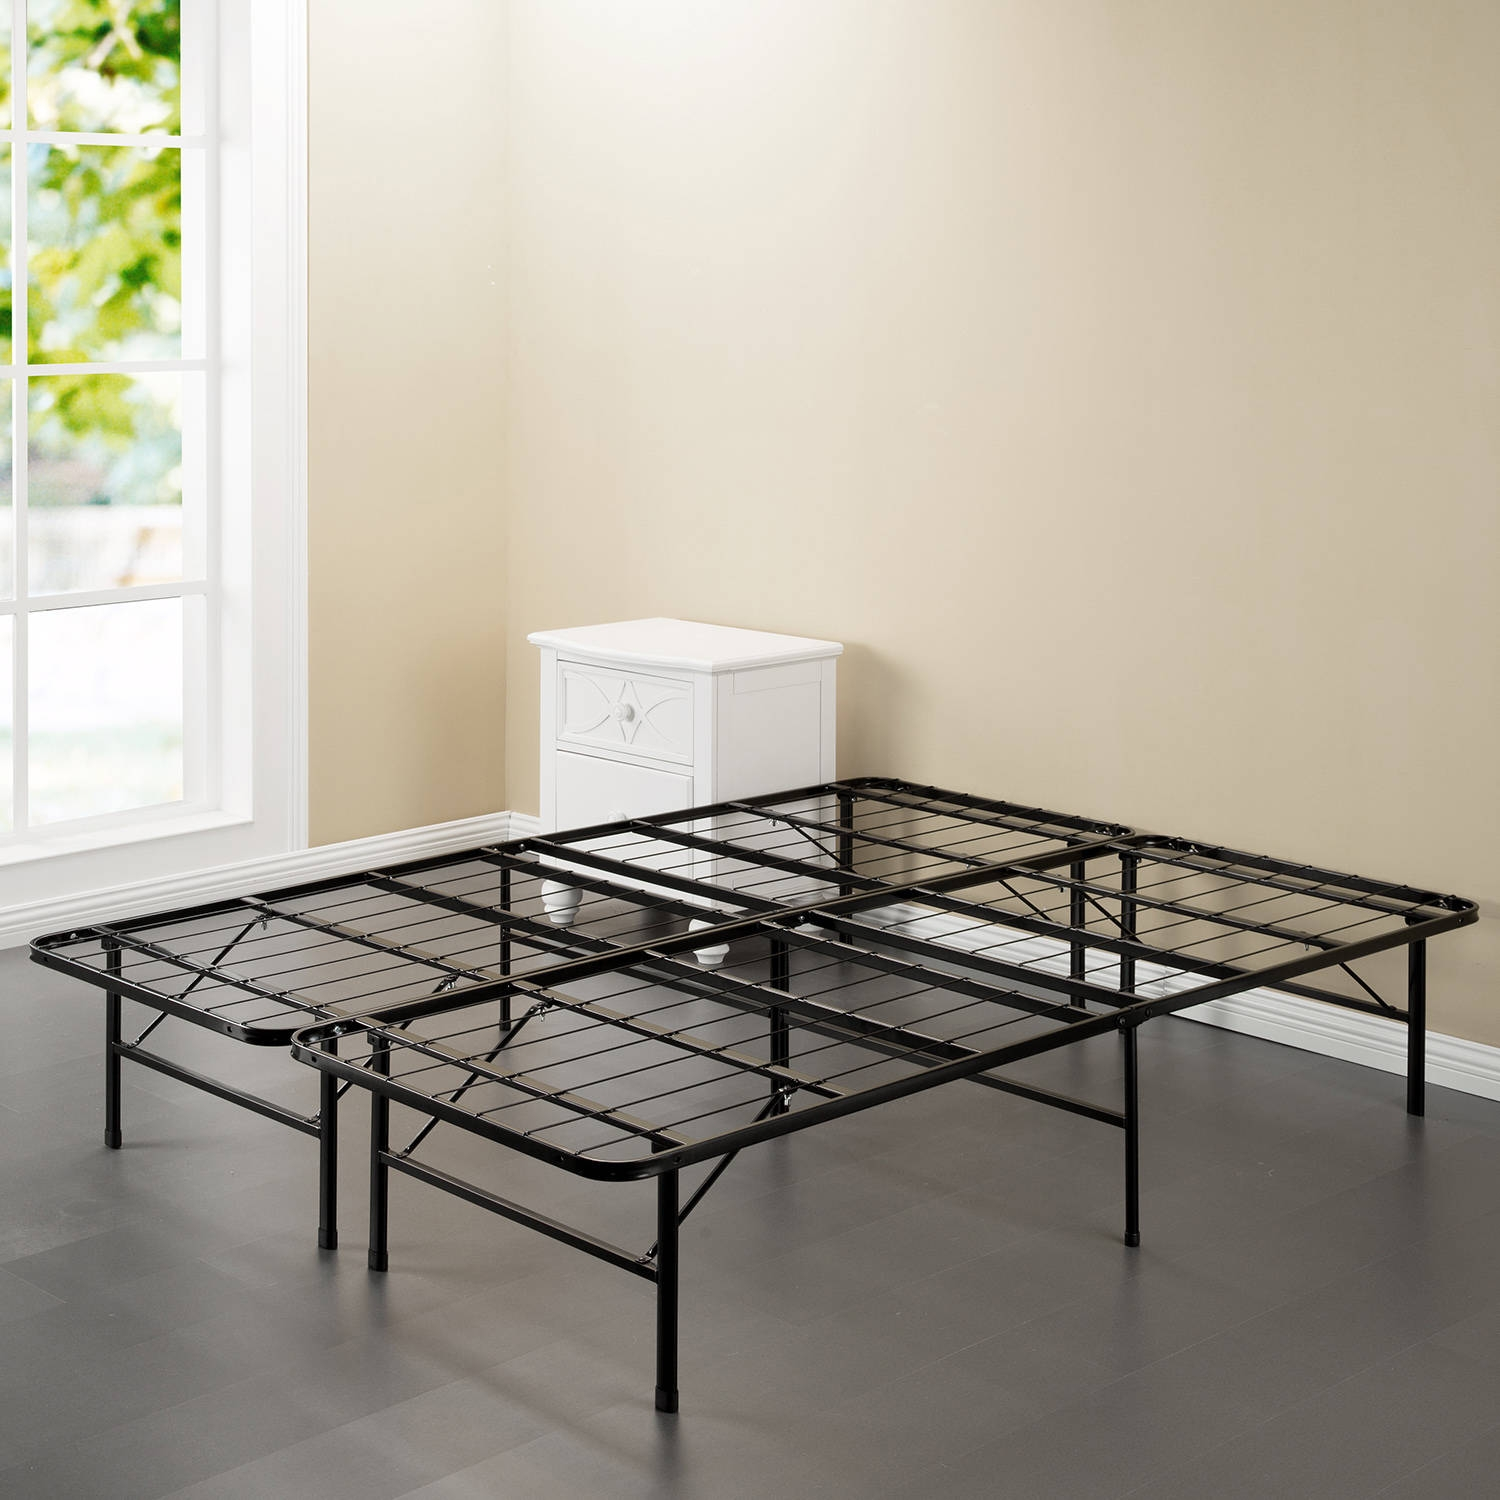 Permalink to Metal Bed Frame With Storage Space